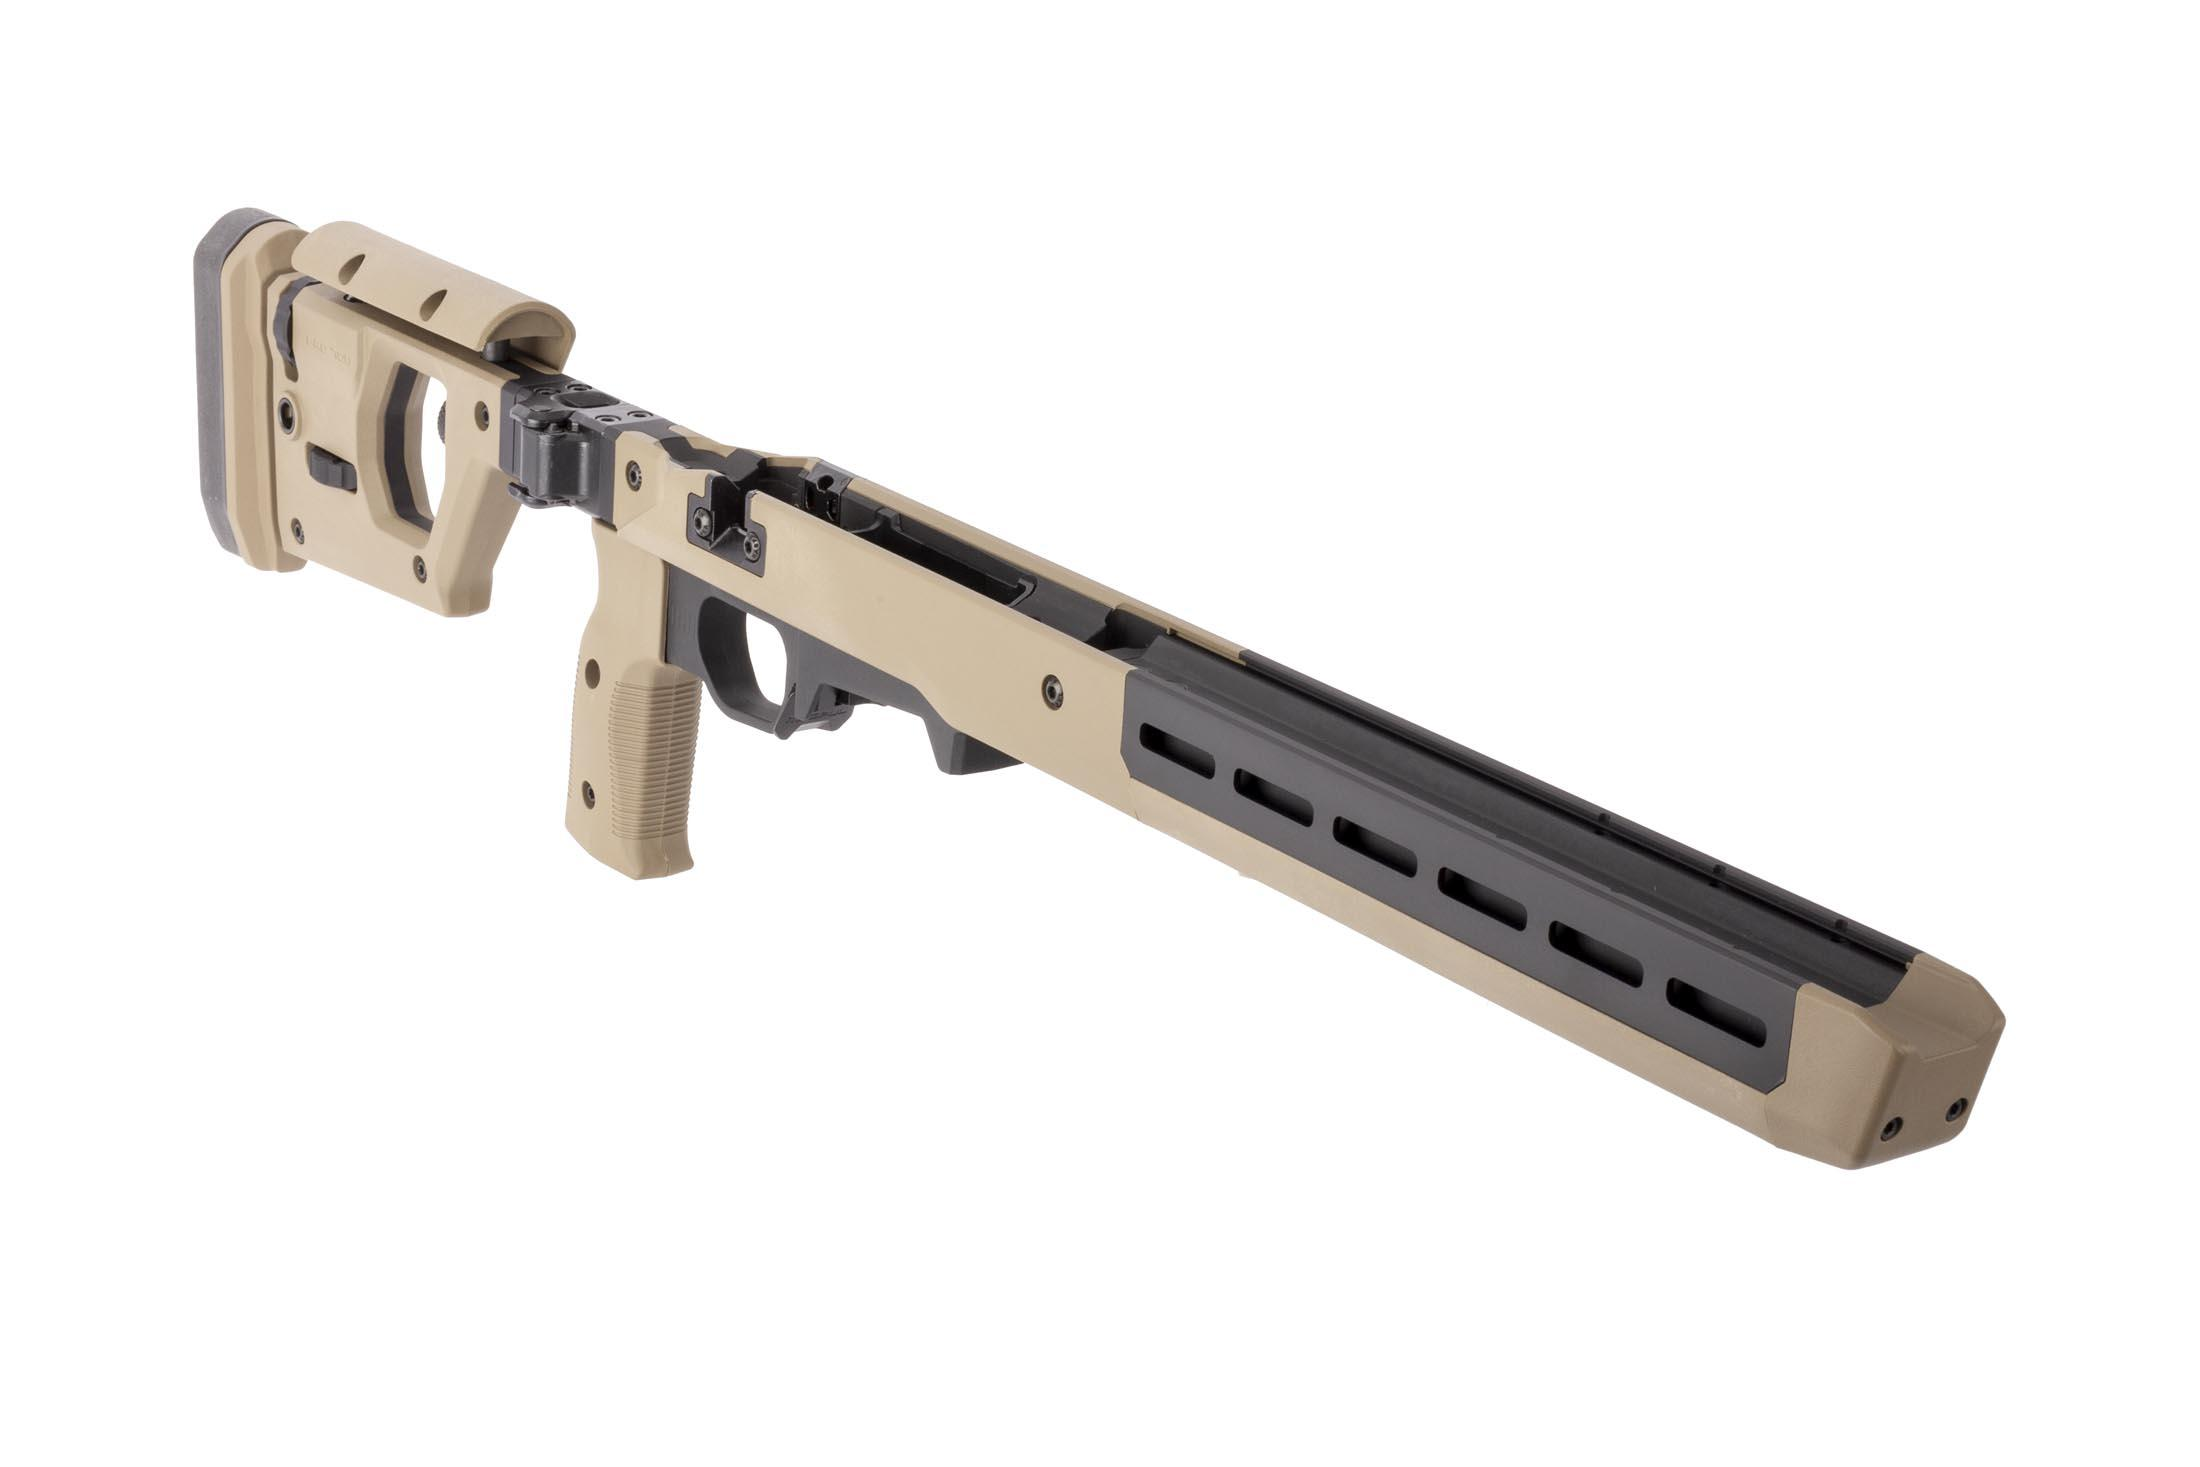 Magpul Pro 700 Rifle Chassis is the ultimate short action rifle stock for precision and tactical shooting with flat dark earth finish